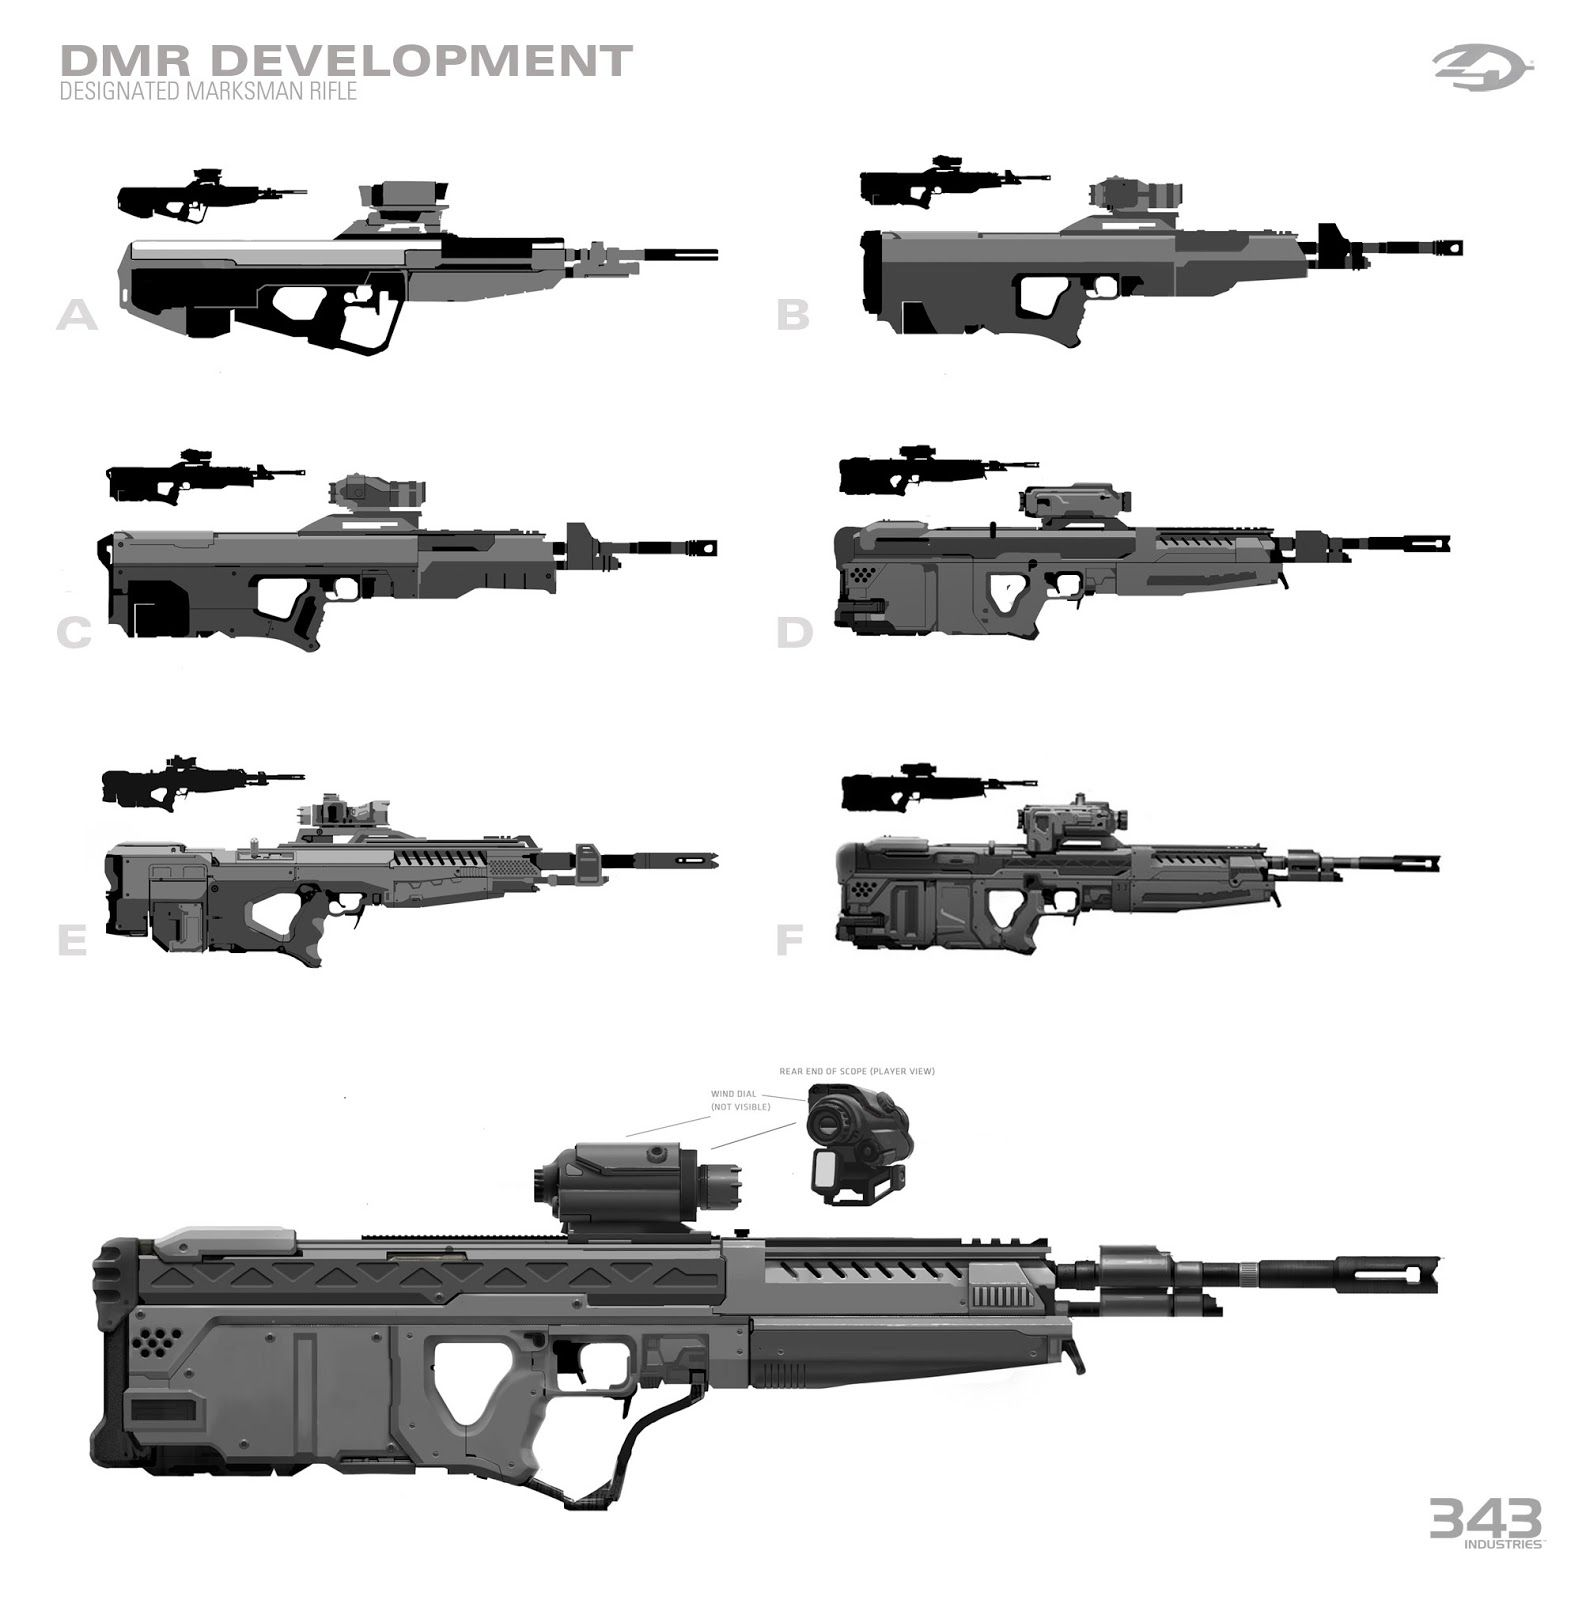 Pin By Kyle Rau On Weapon Inspiration